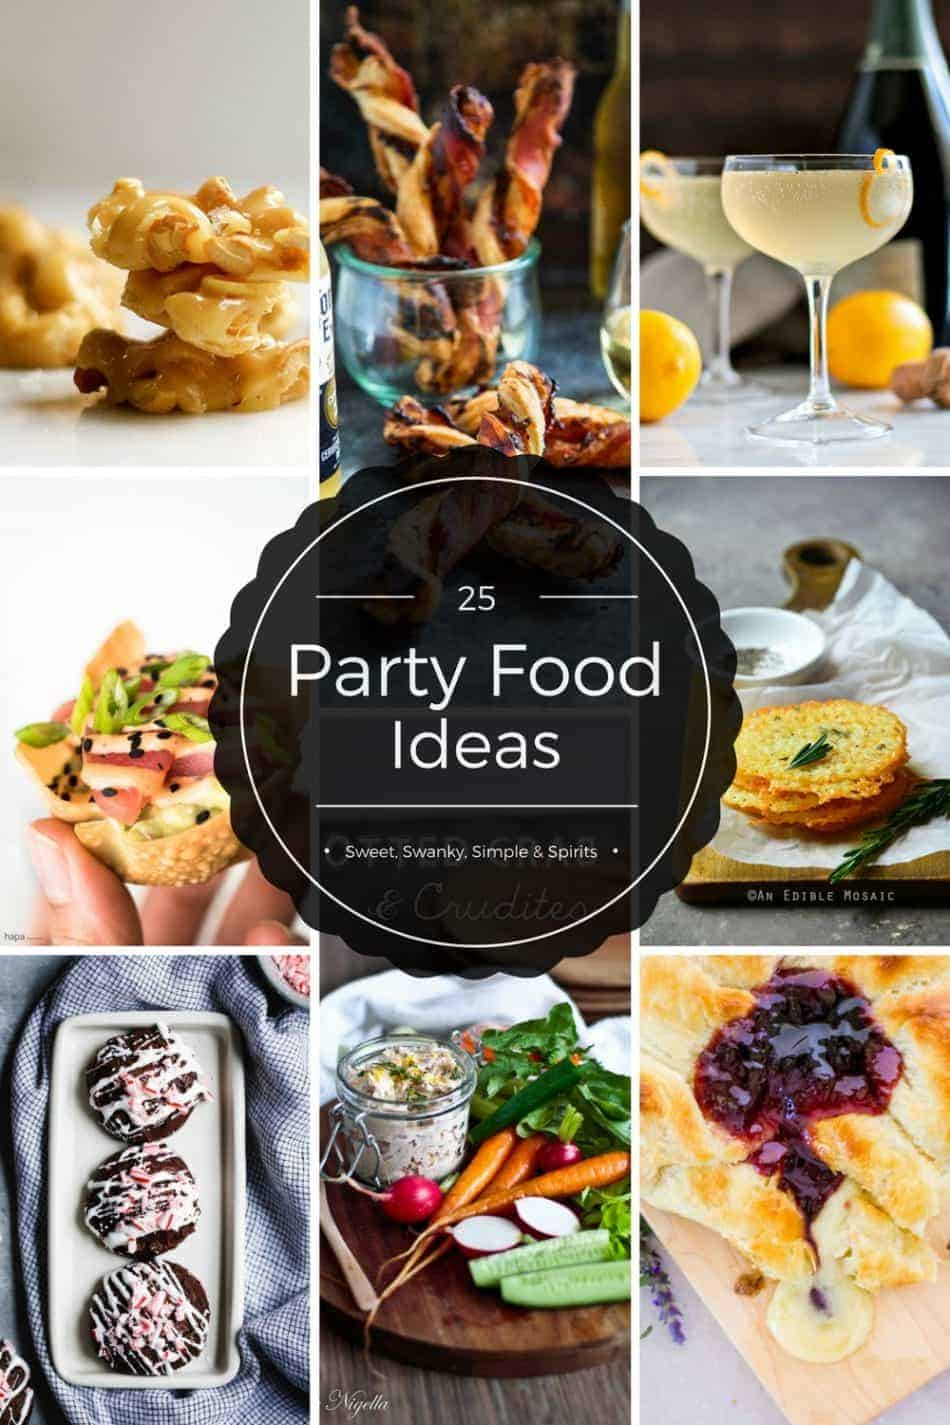 The Best Party Food Ideas | Appetizer Recipes | Cocktail Party Food